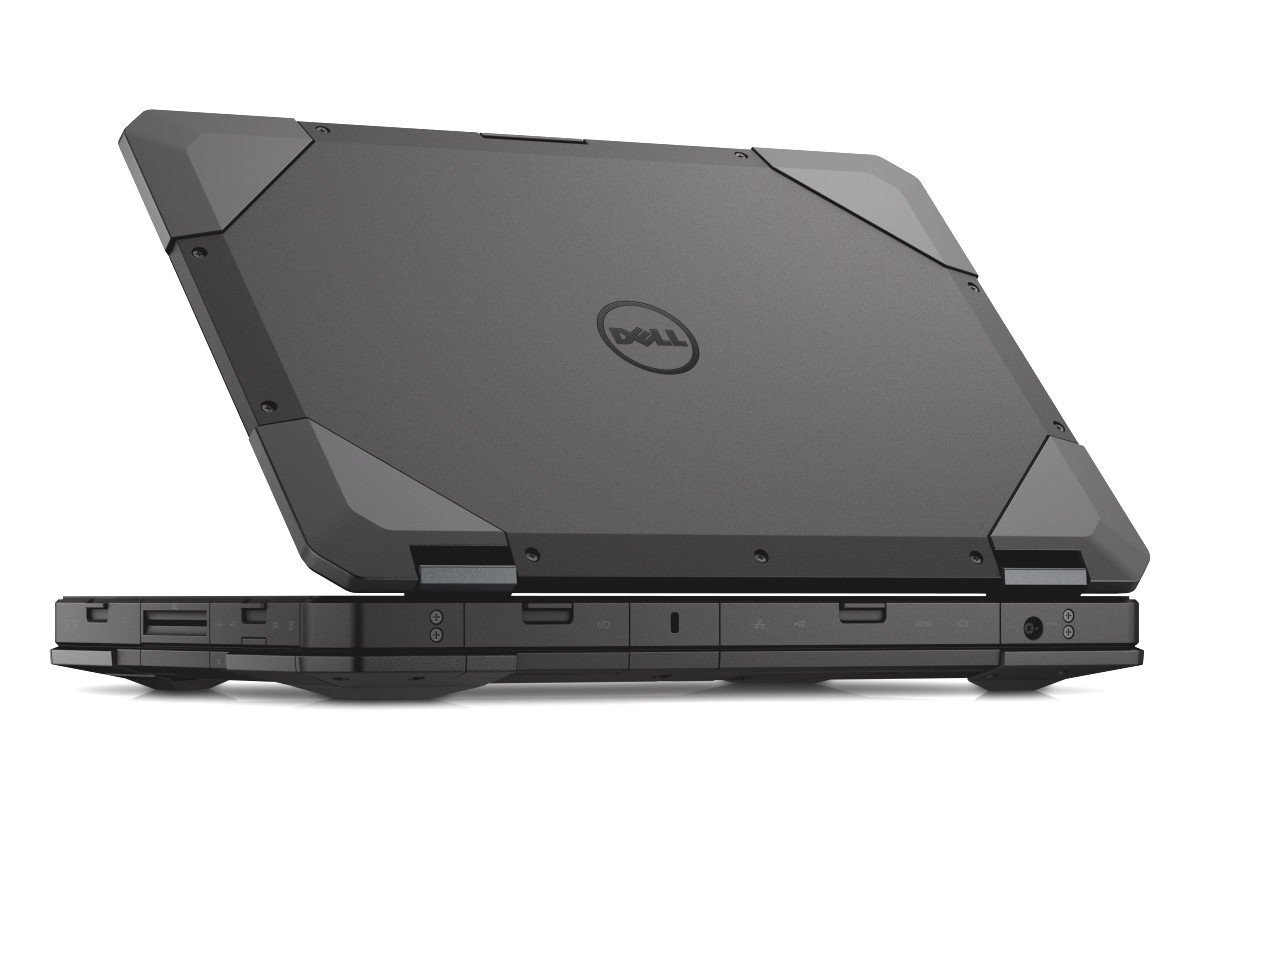 Dell Laude 14 5414 Rugged Extreme